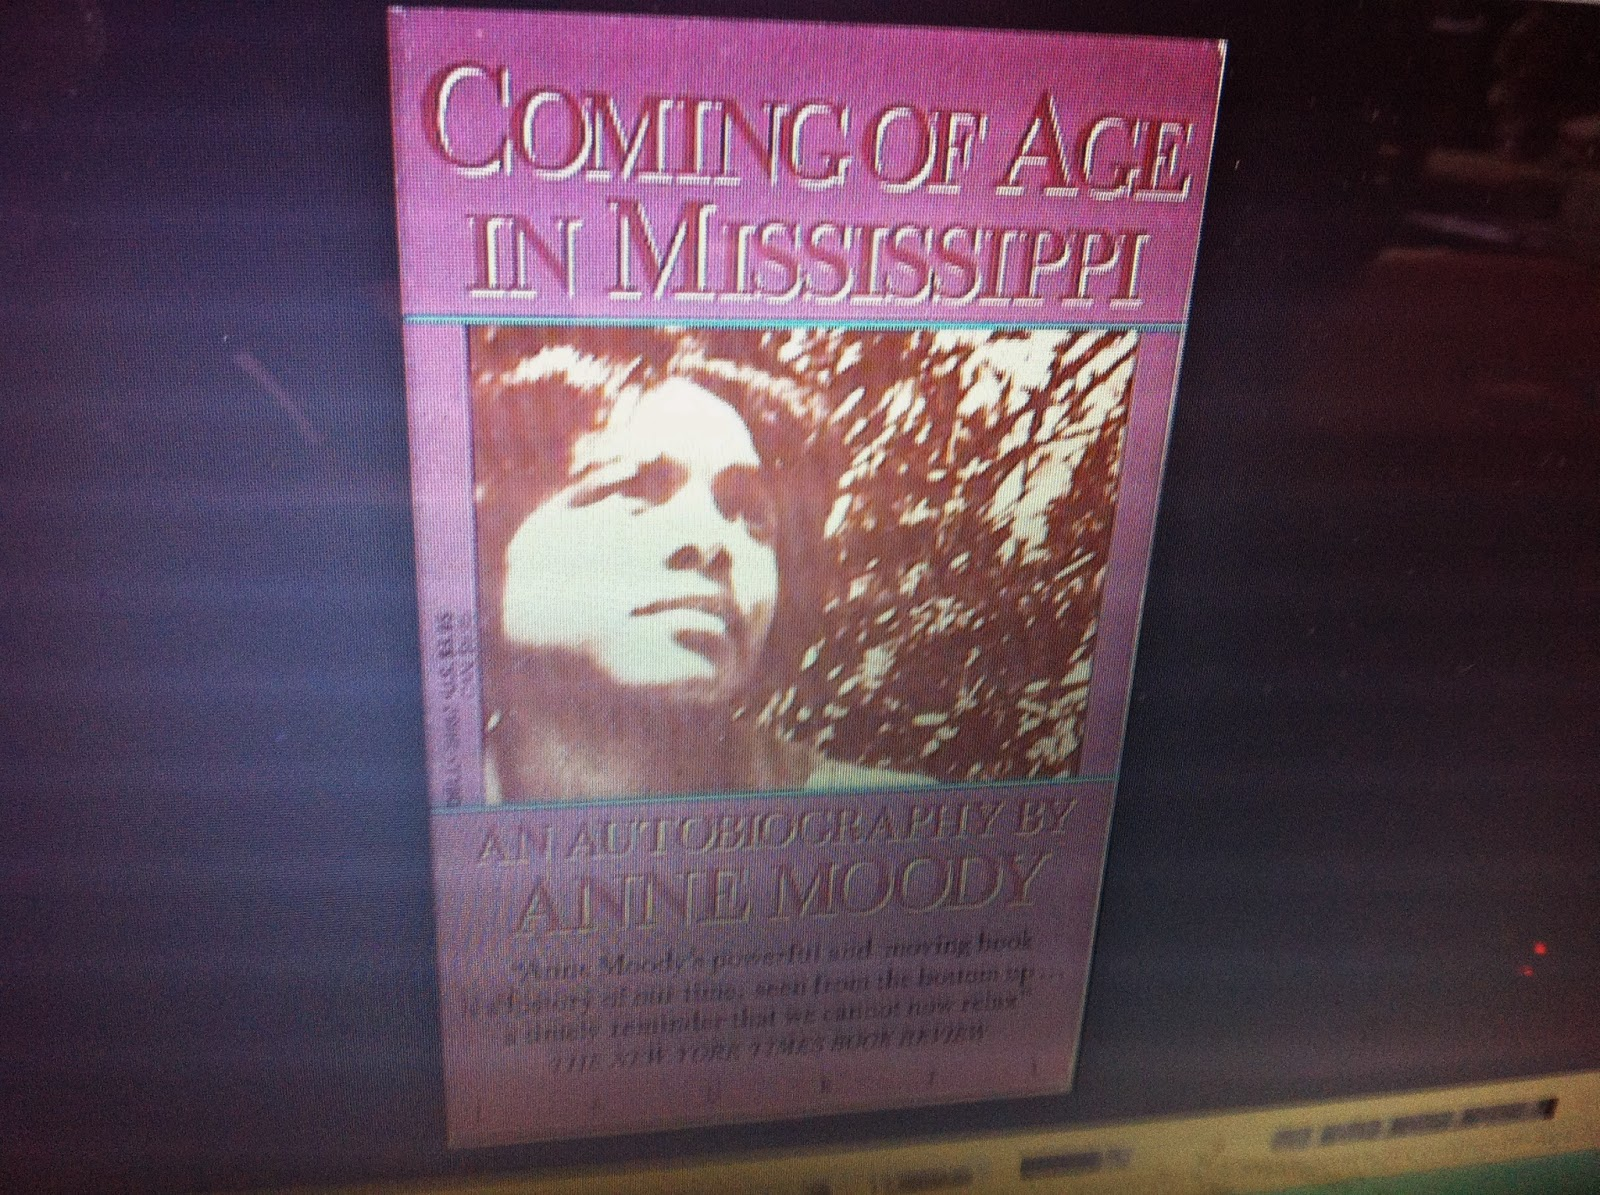 the life and career of anne moody Moody fought racism and segregation from when she was a little girl in centrevillle, mississippi, and continued throughout her adult life around the american south [1] contents.